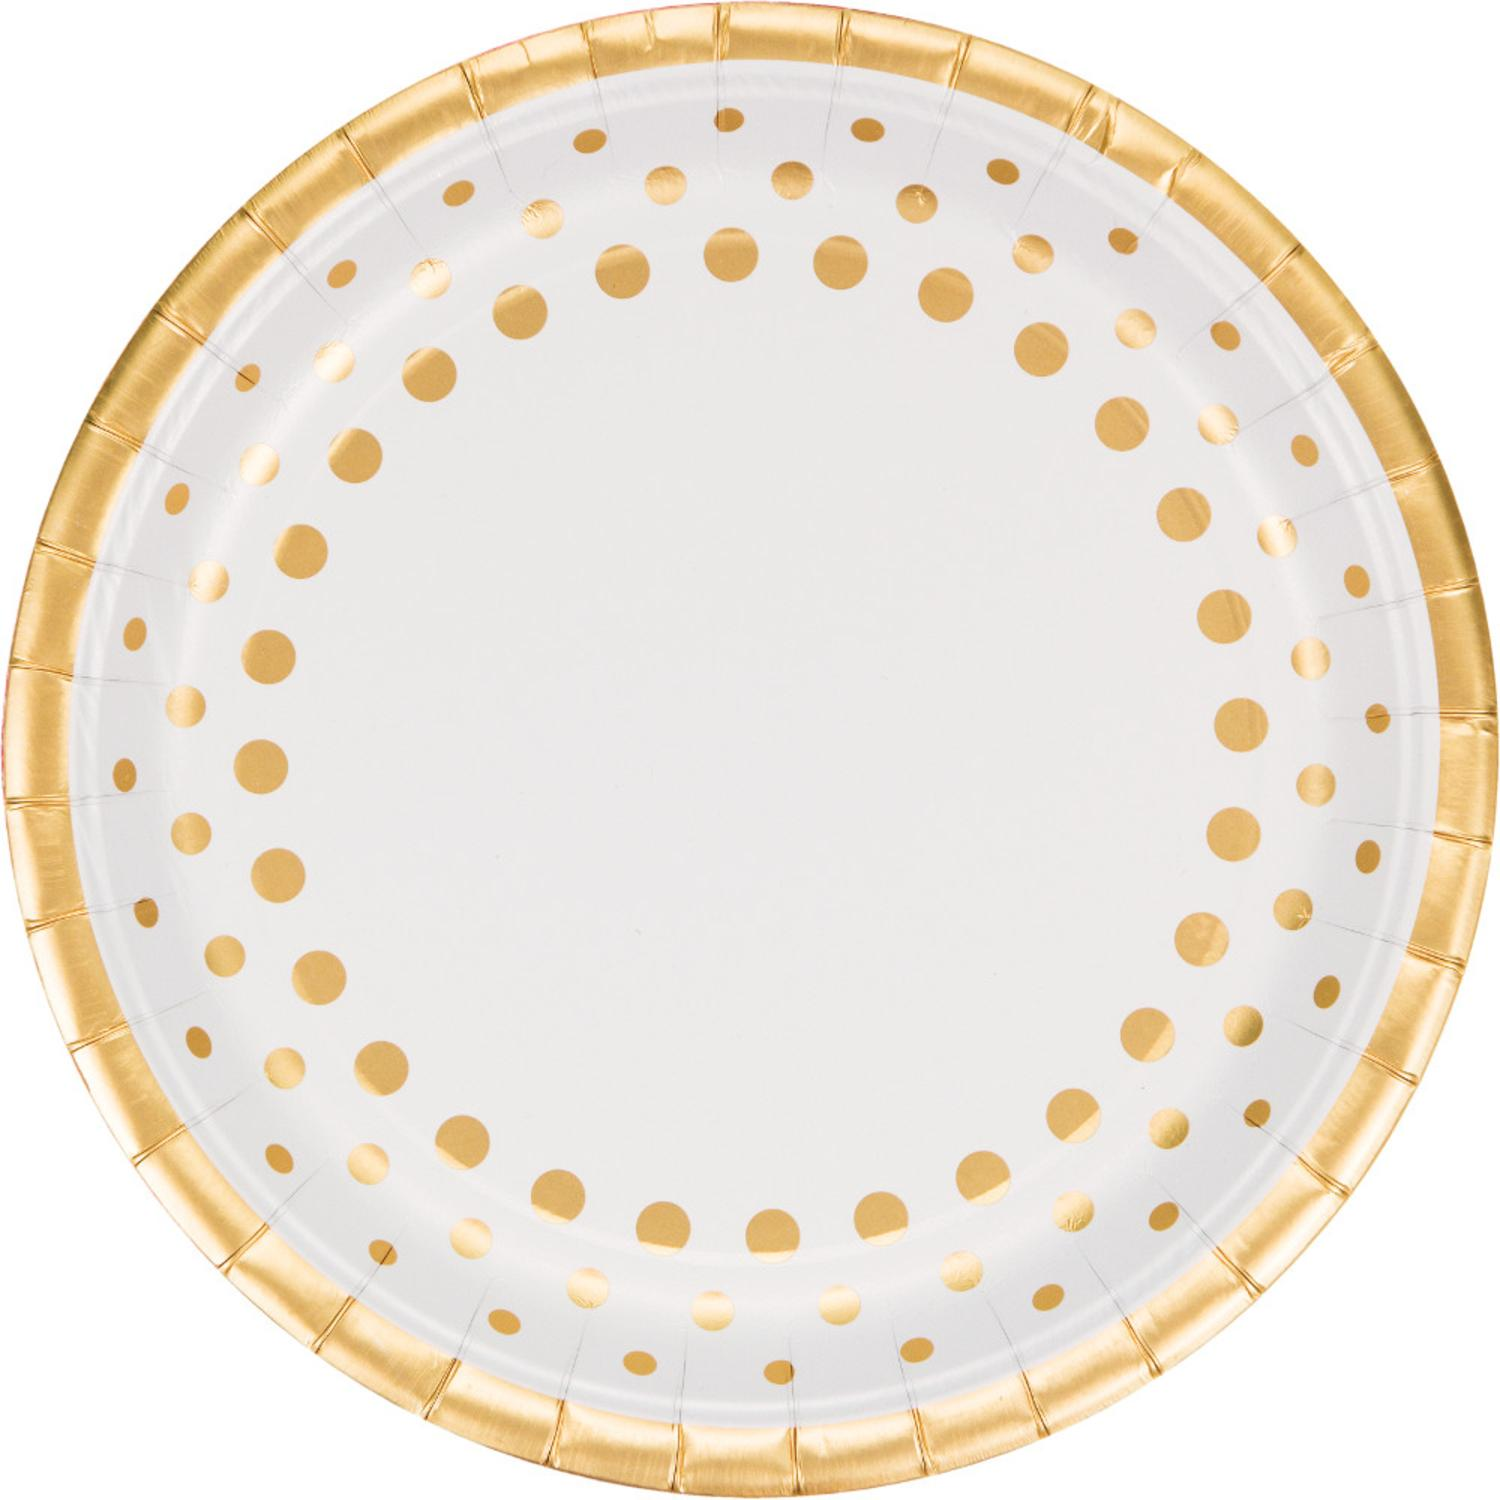 Club Pack of 96 Sparkle and Shine Gold Disposable Plastic Party Banquet Dinner Plates 10""